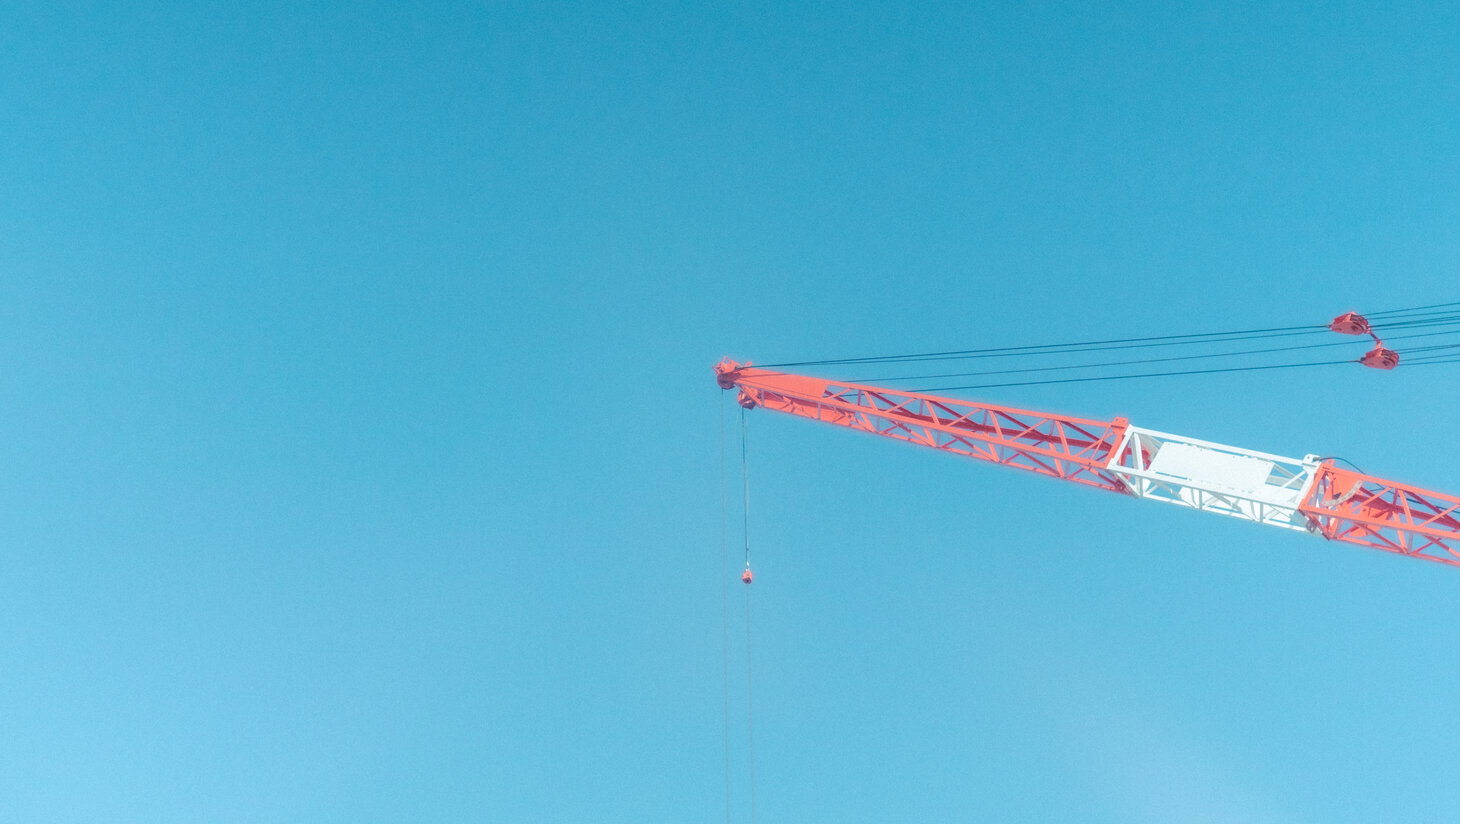 Red crane under blue sky scopio 72abf304 0e41 4dc2 8338 0408c998bc3f